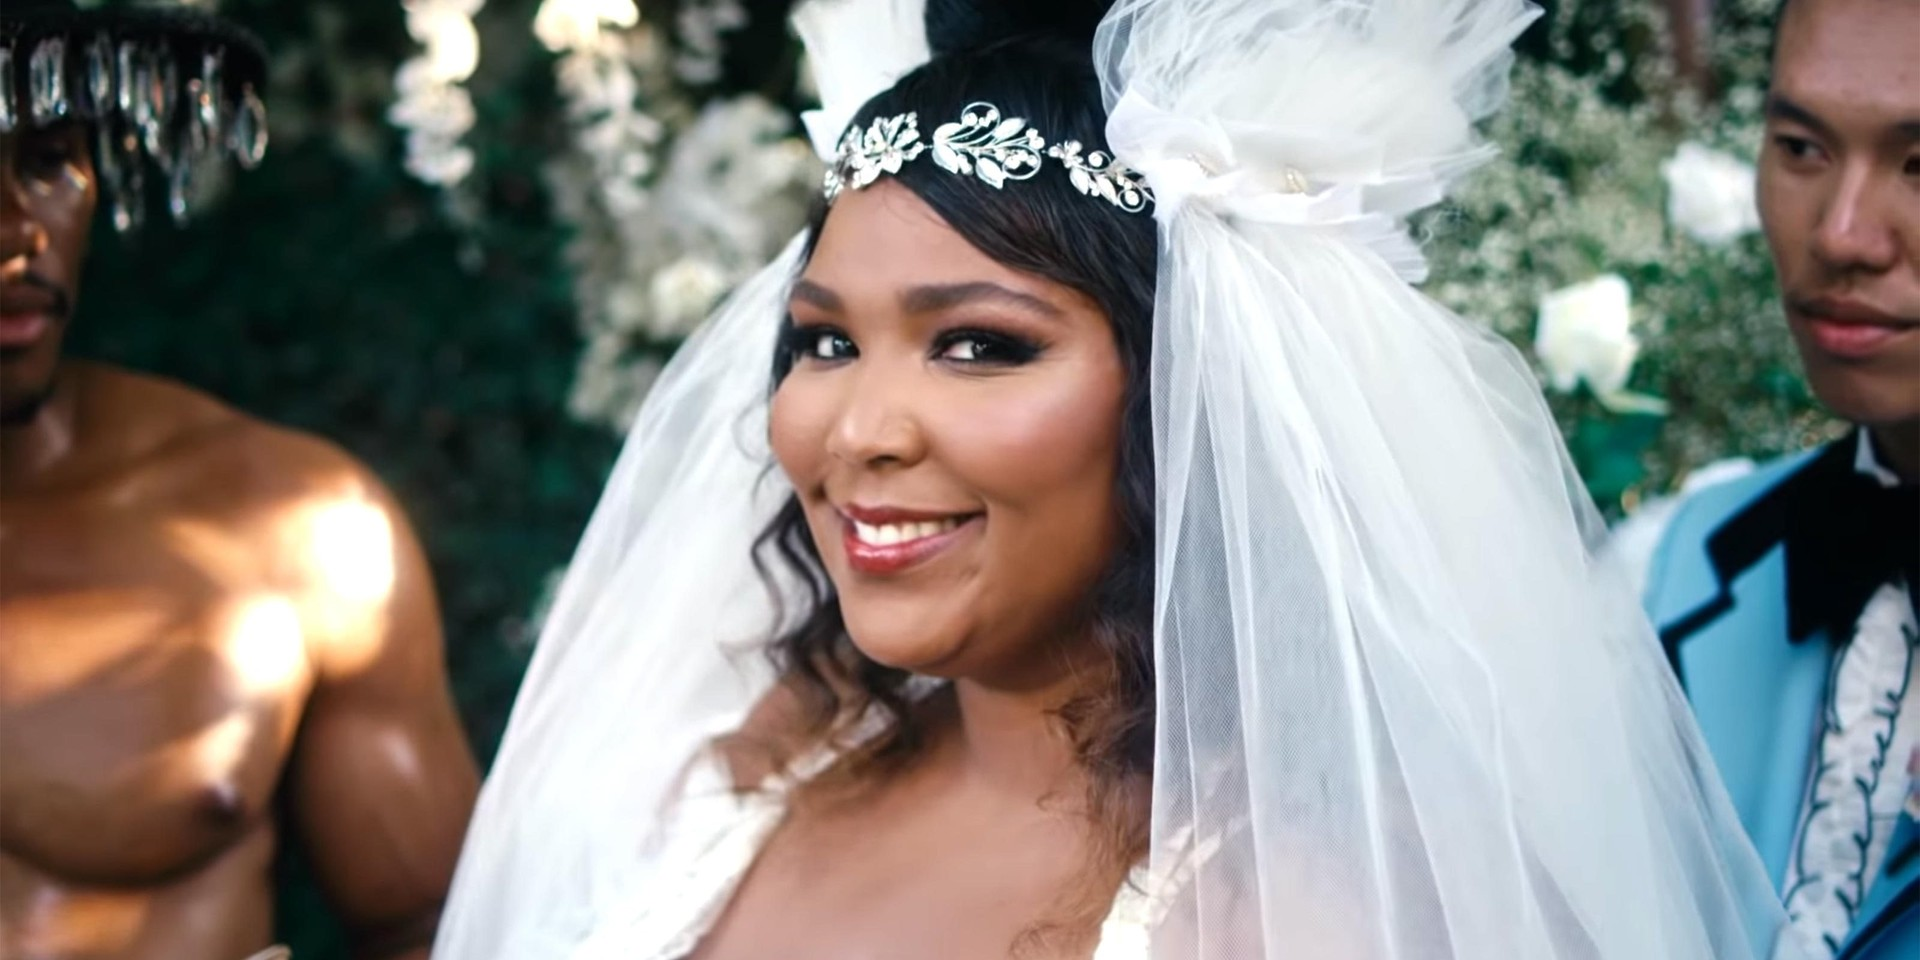 Lizzo's 'Truth Hurts' is now the longest-running chart-topper for a solo female rapper